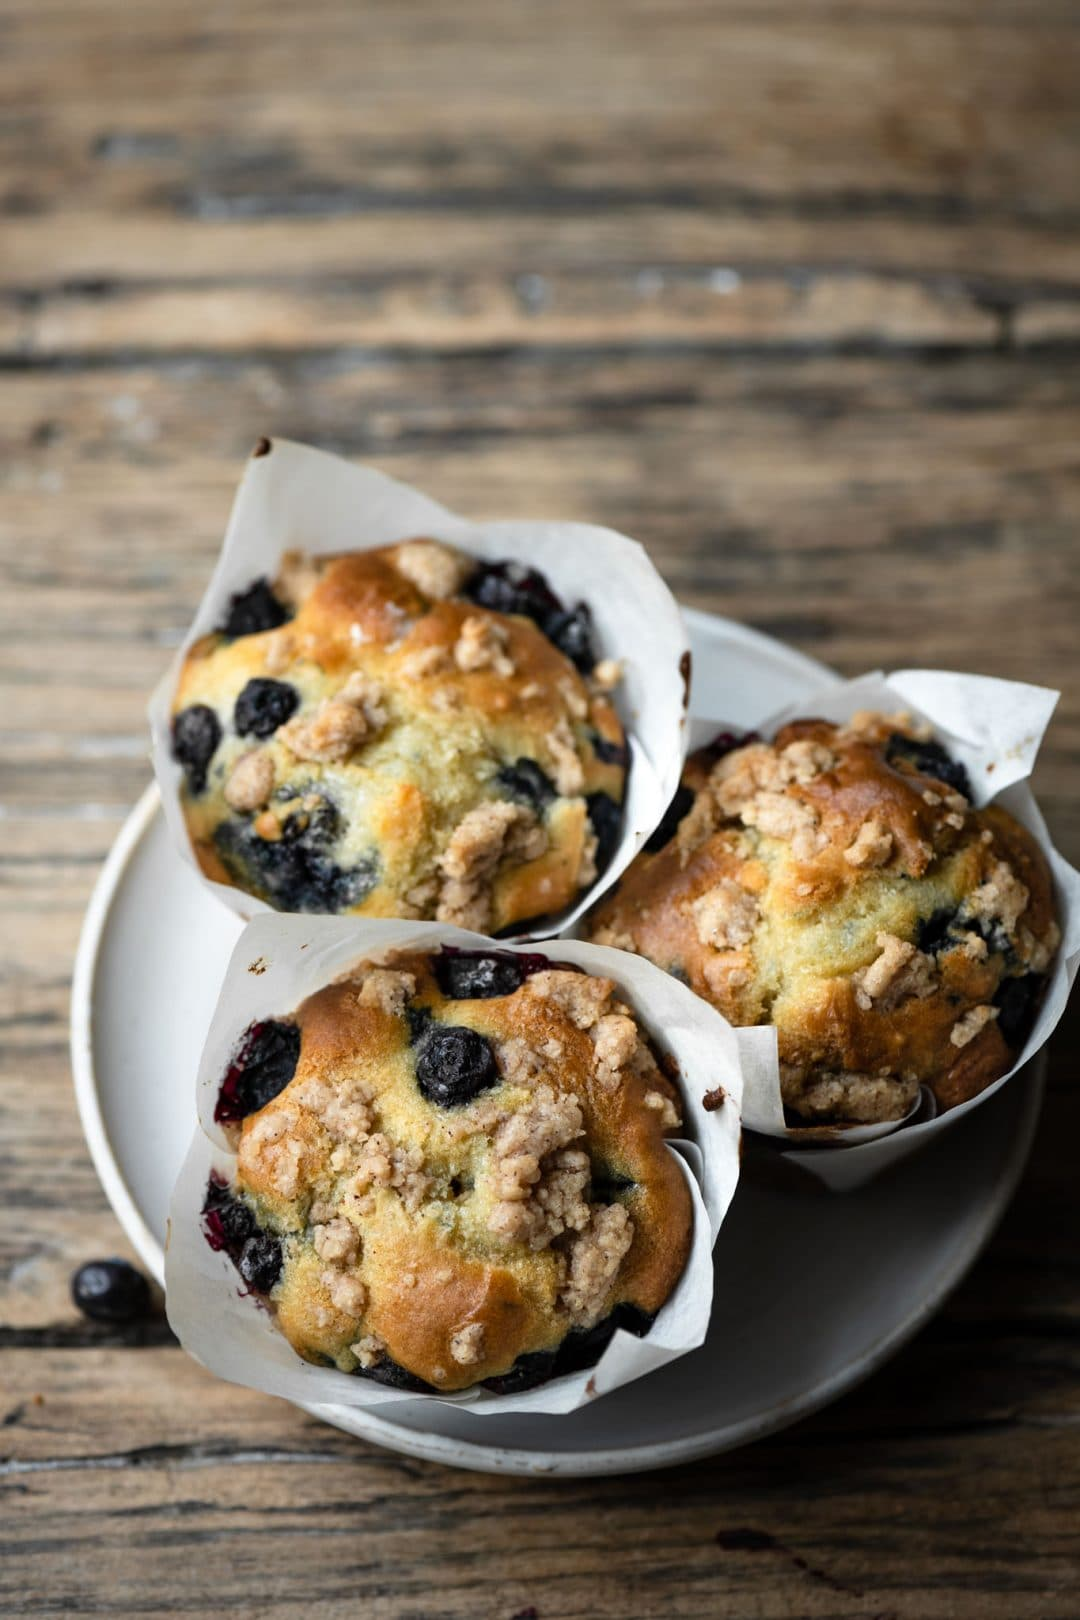 Homemade coffee muffins filled with fresh blueberries.